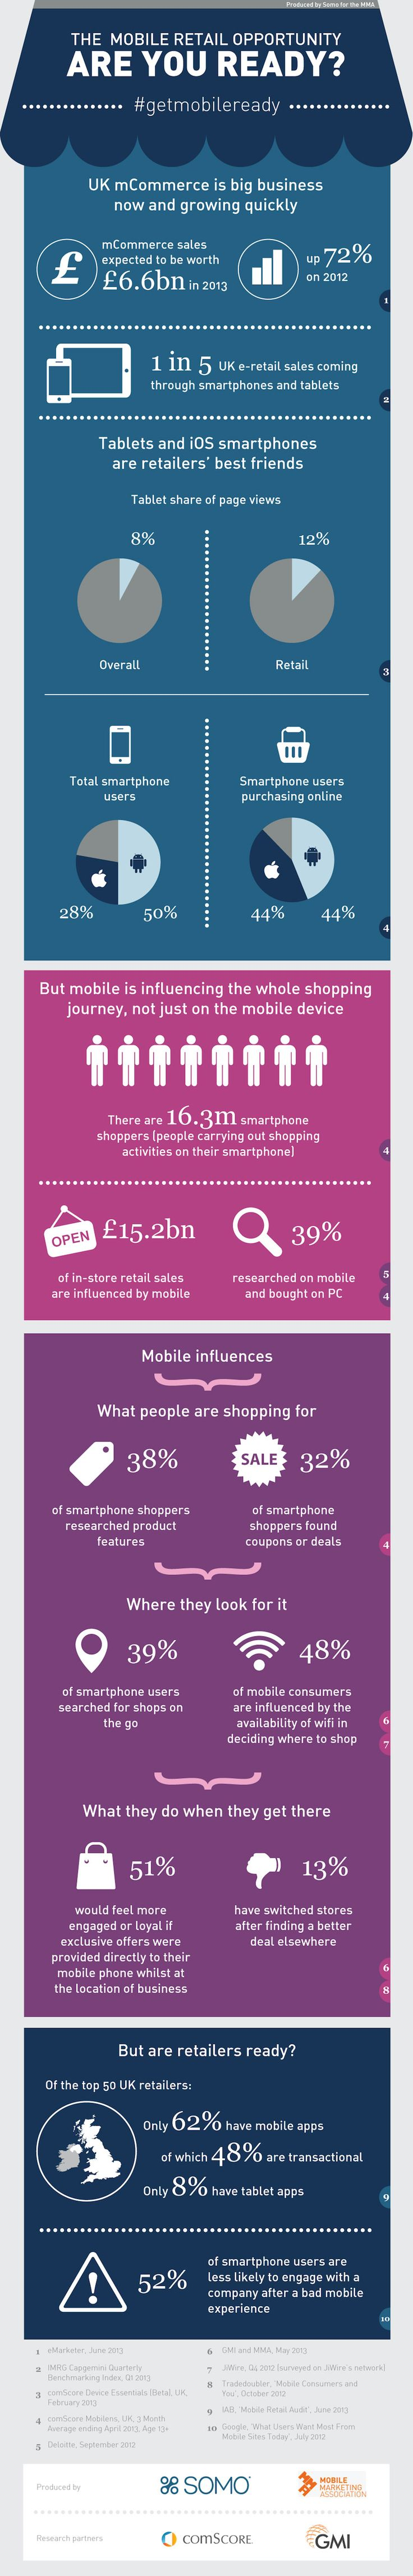 The Mobile Retail Opportunity: Are You Ready?   Mobile Marketing Association